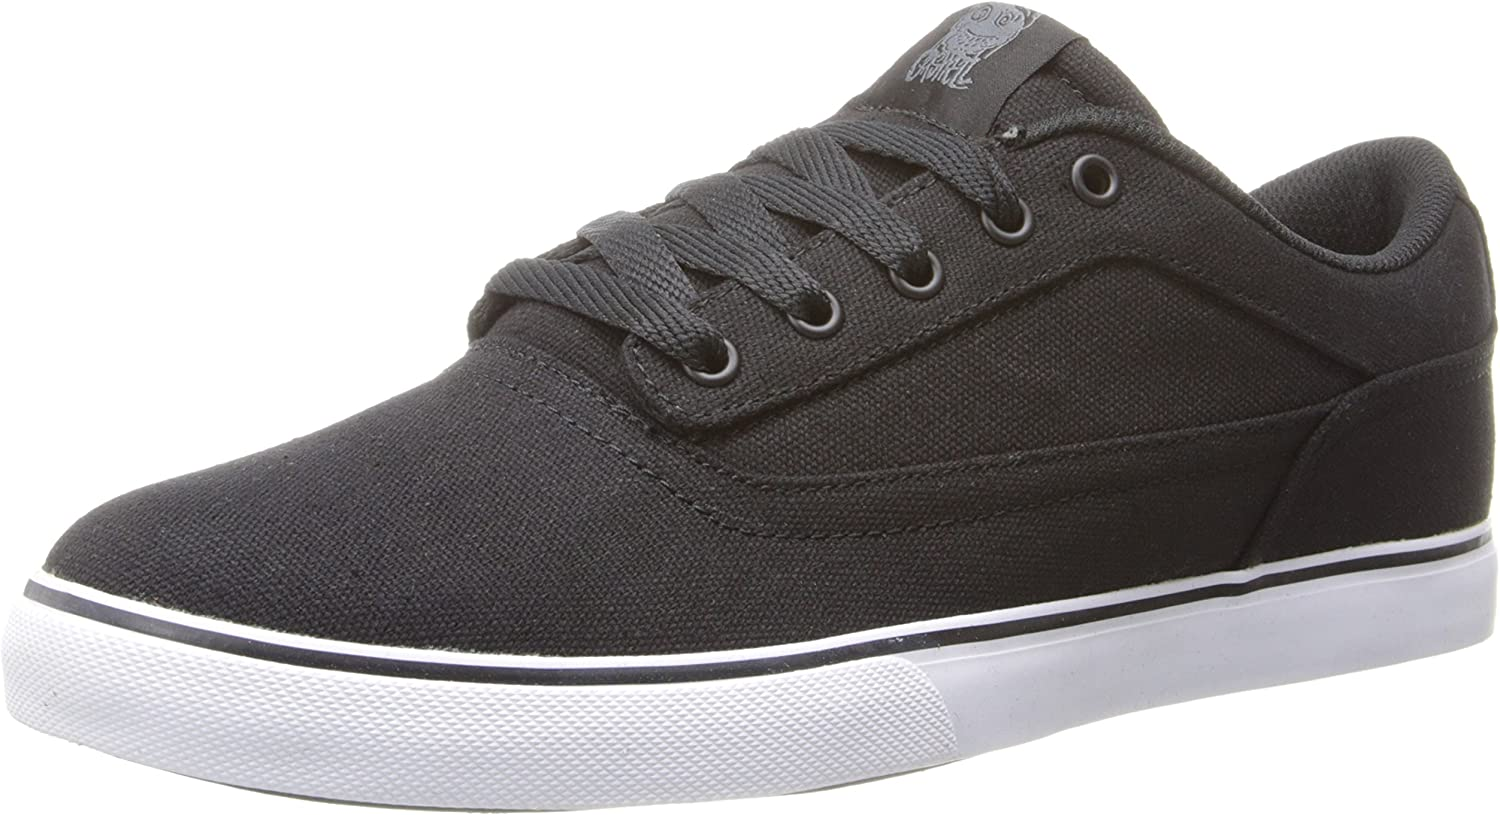 Osiris shoes Men's Caswell VLC Trainer